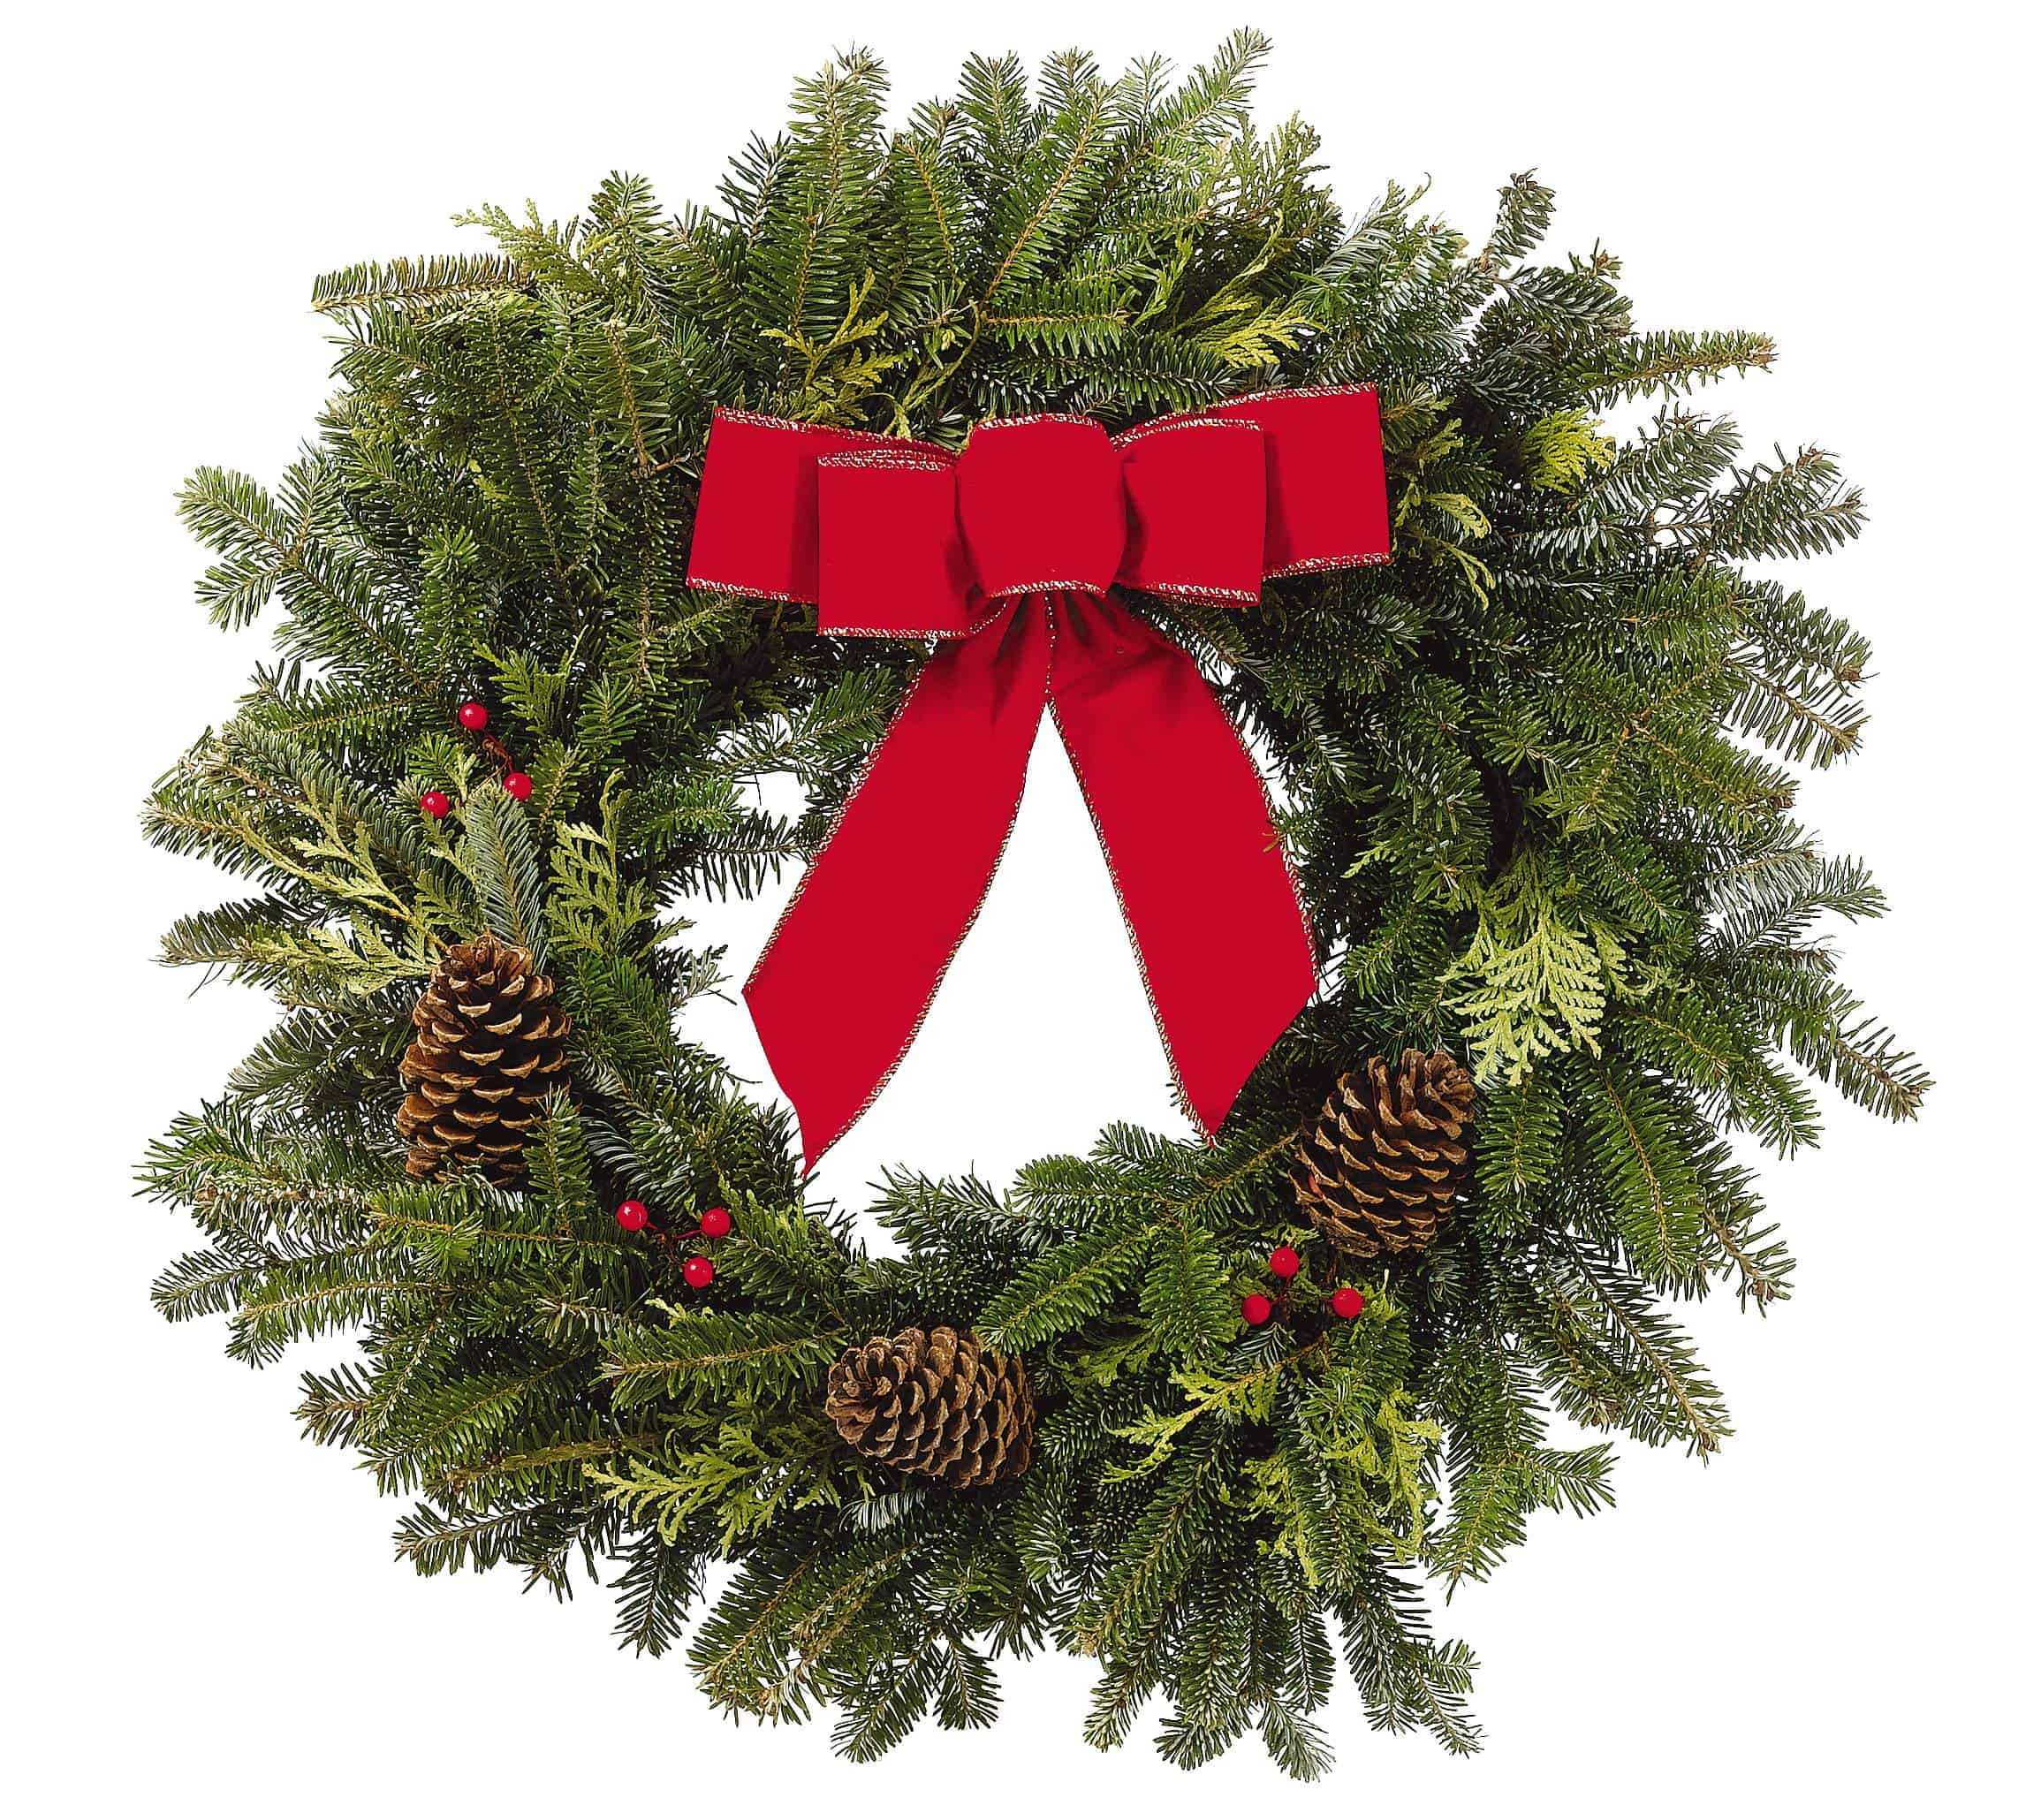 Outdoor Christmas Decorations Clipart: PC Outdoor Holiday Wreath